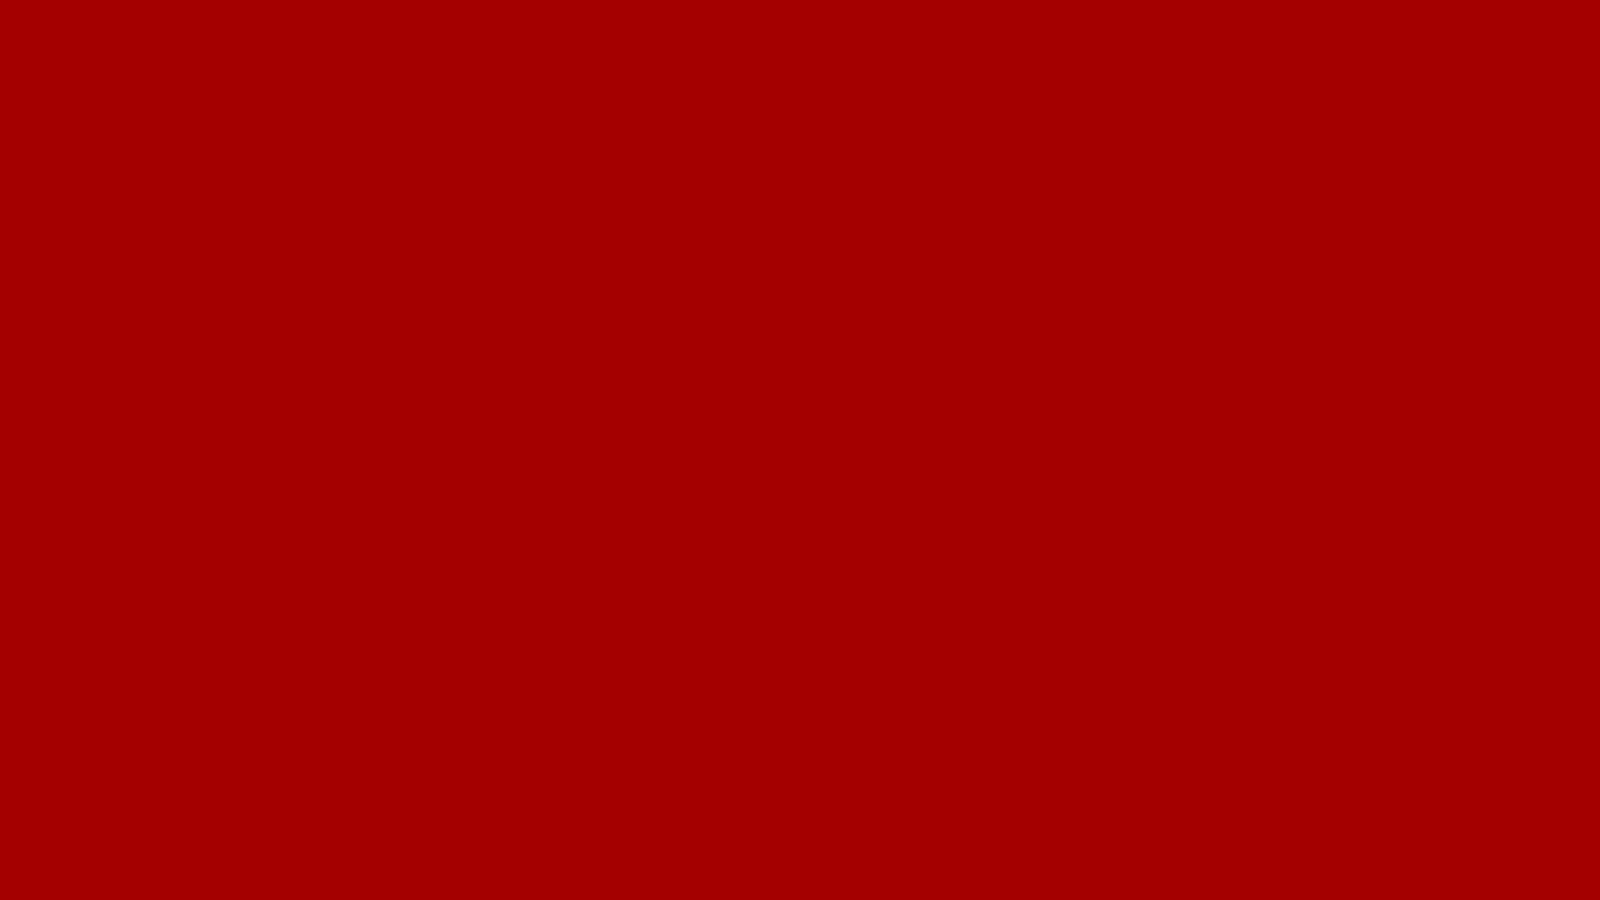 1600x900 Dark Candy Apple Red Solid Color Background